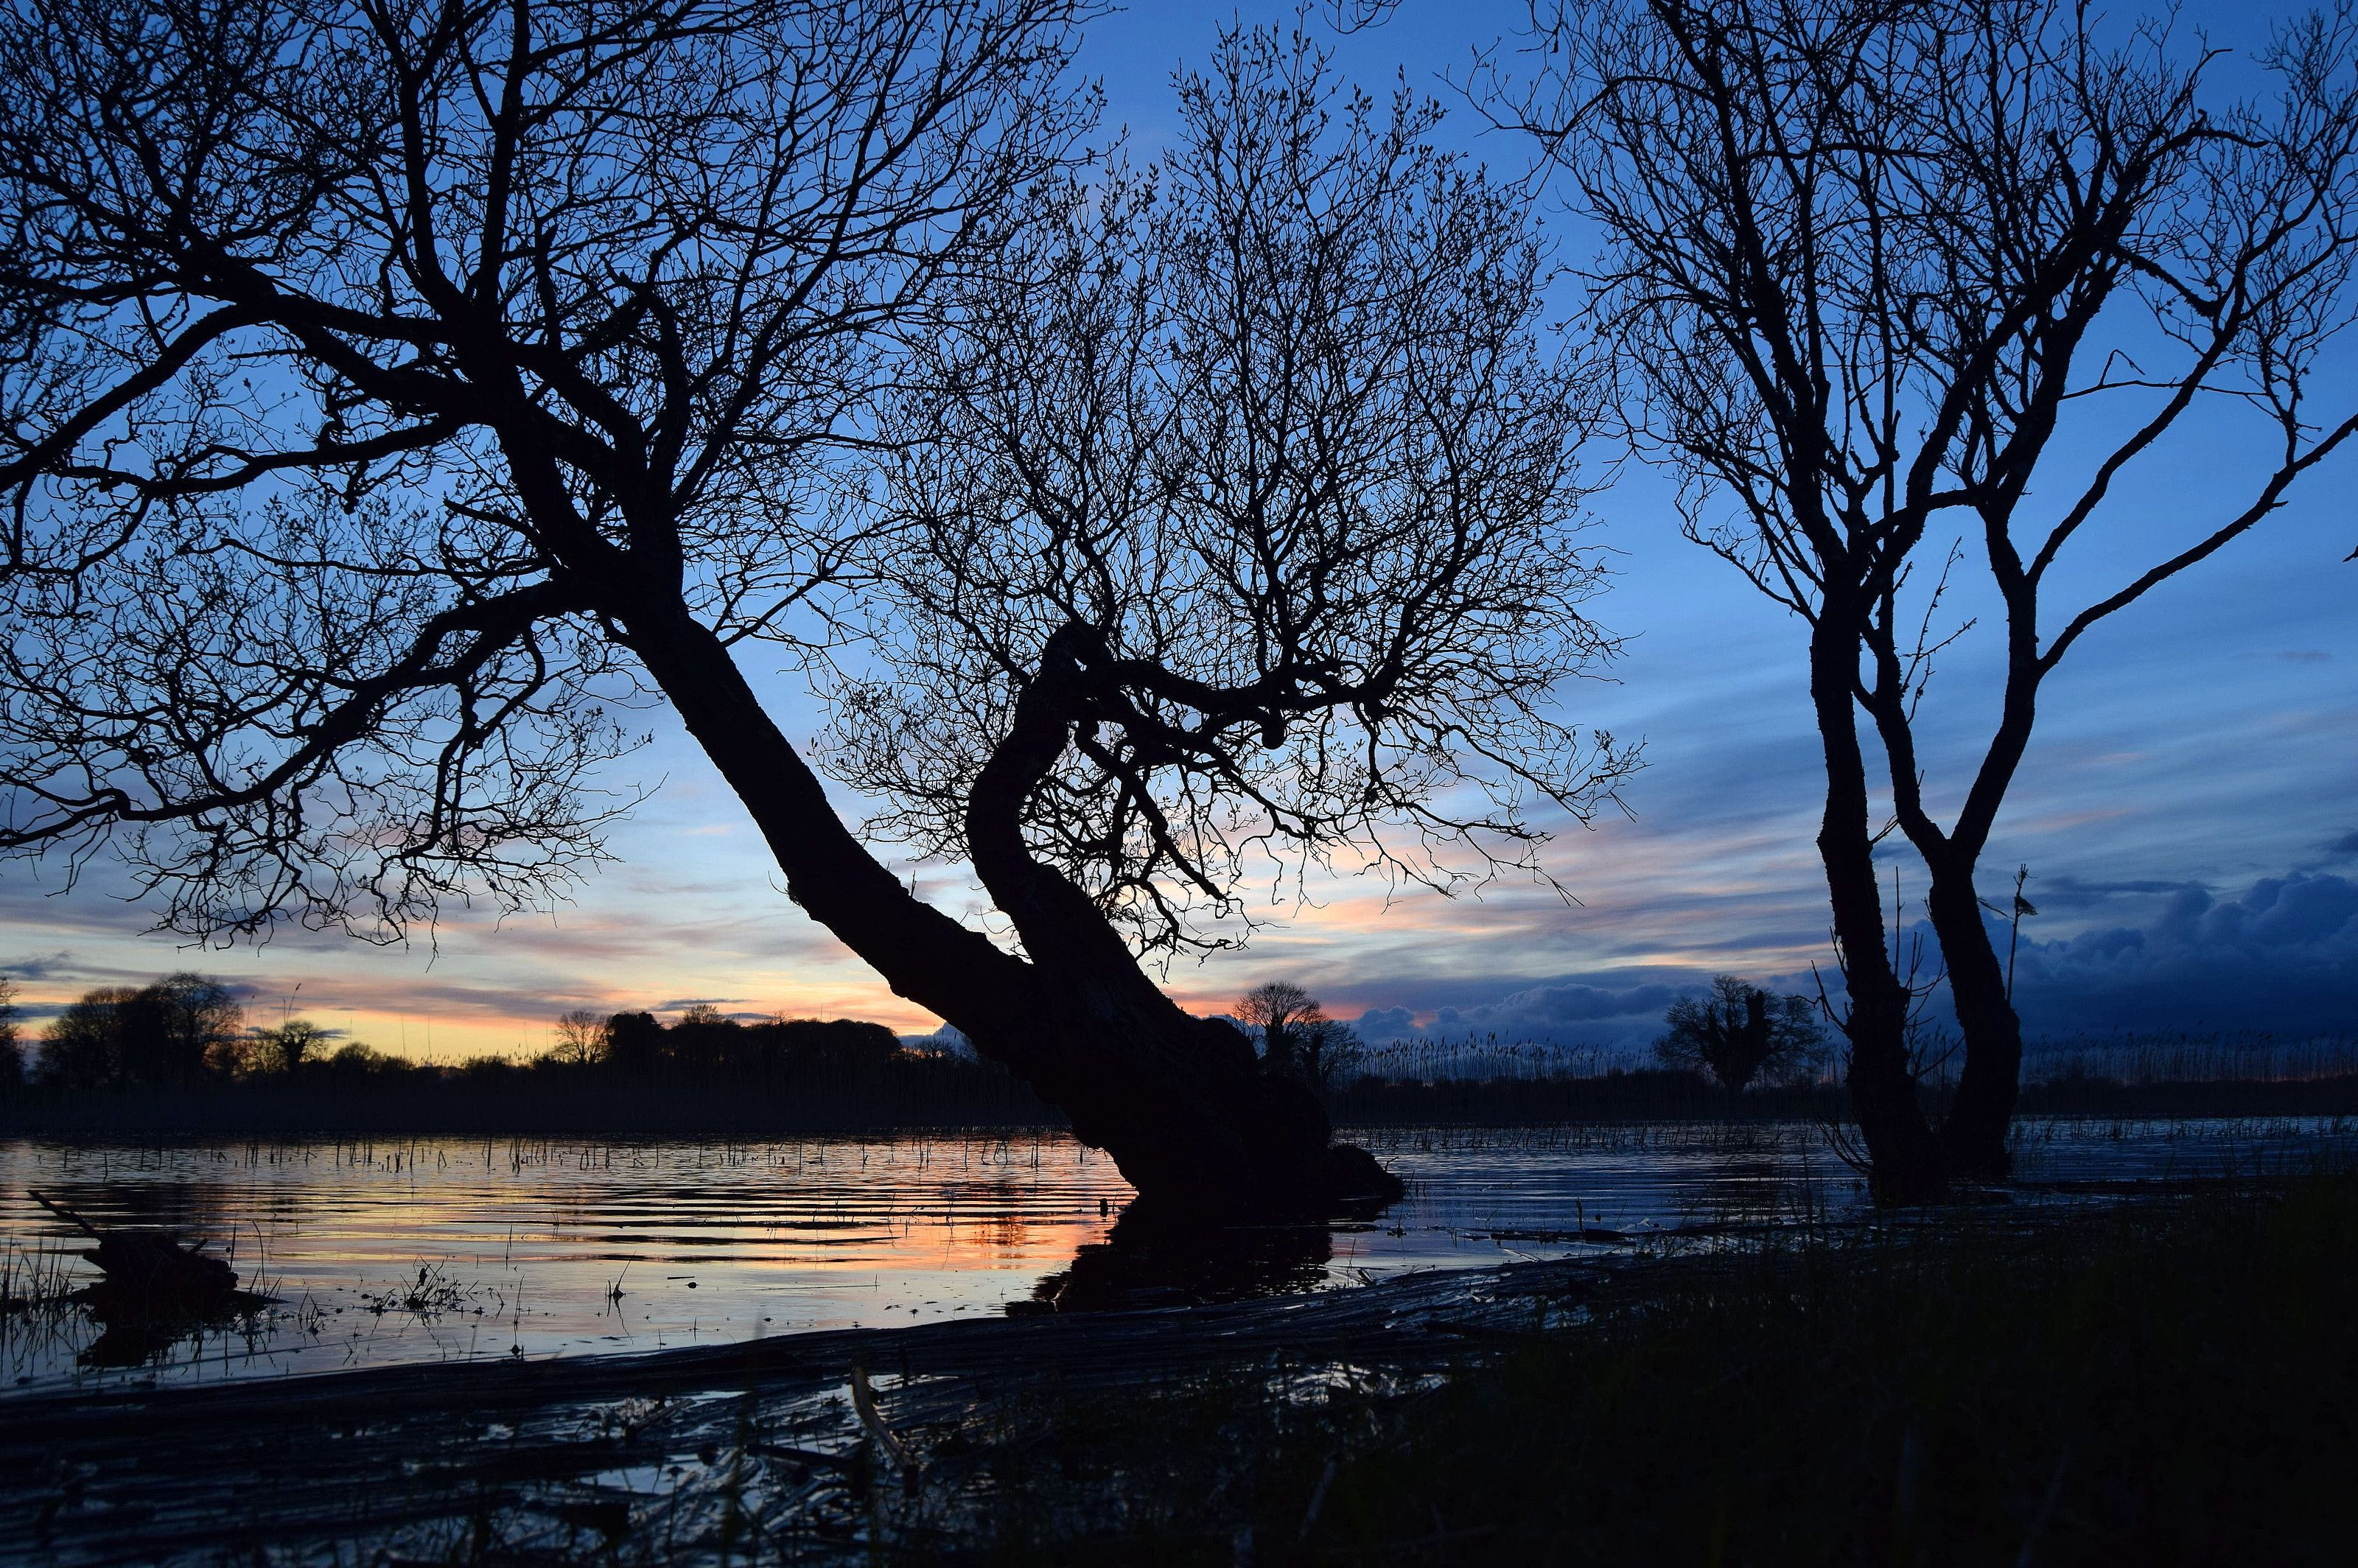 Sun setting on lough Ree foto by Bob Fox